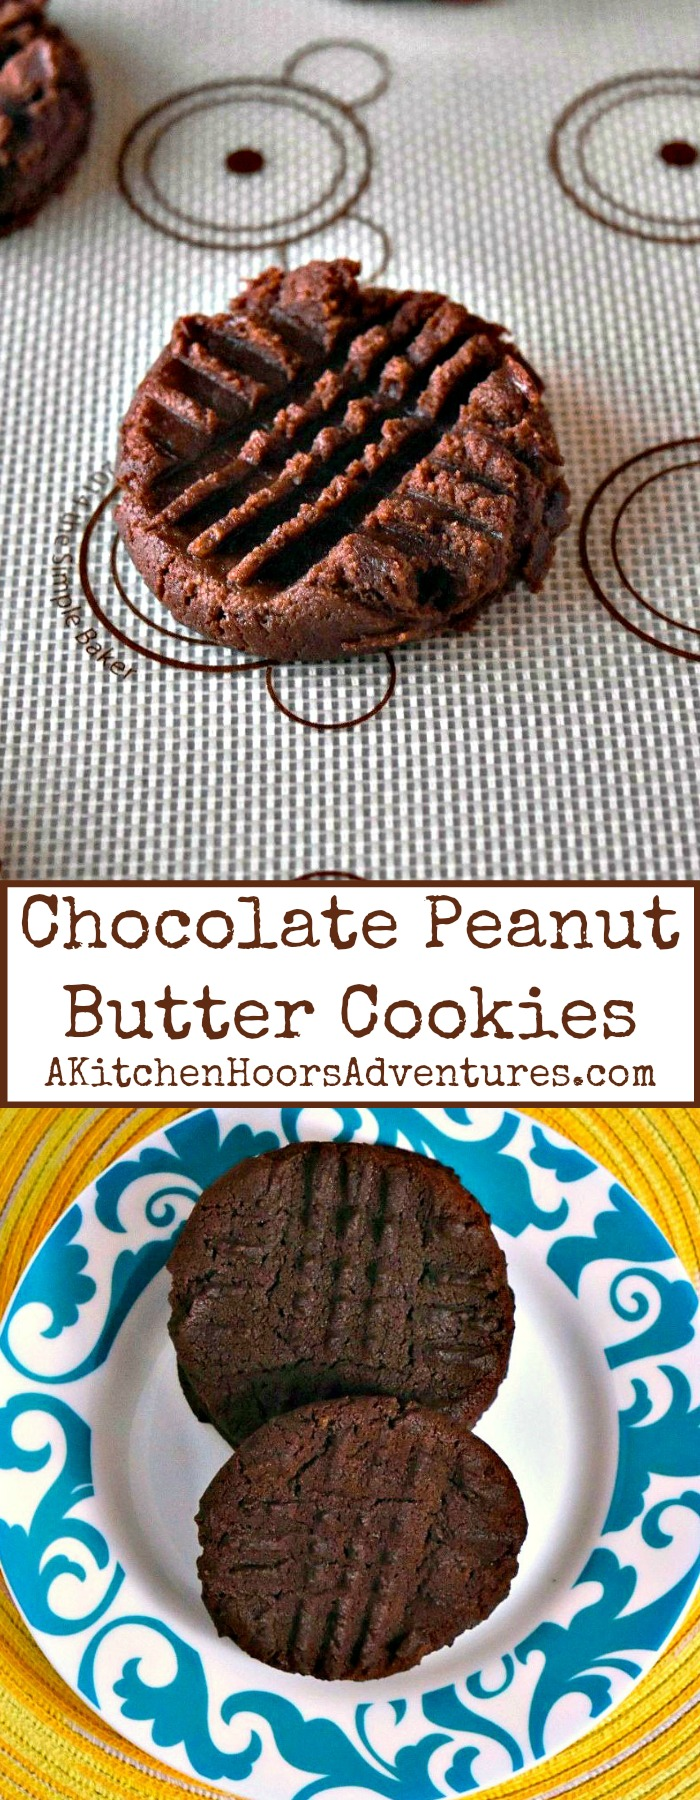 Rich cocoa powder is added to my favorite cookie recipe!  Chocolate Peanut Butter Cookies are so easy to make and a family favorite recipe they will ask for time and time again.